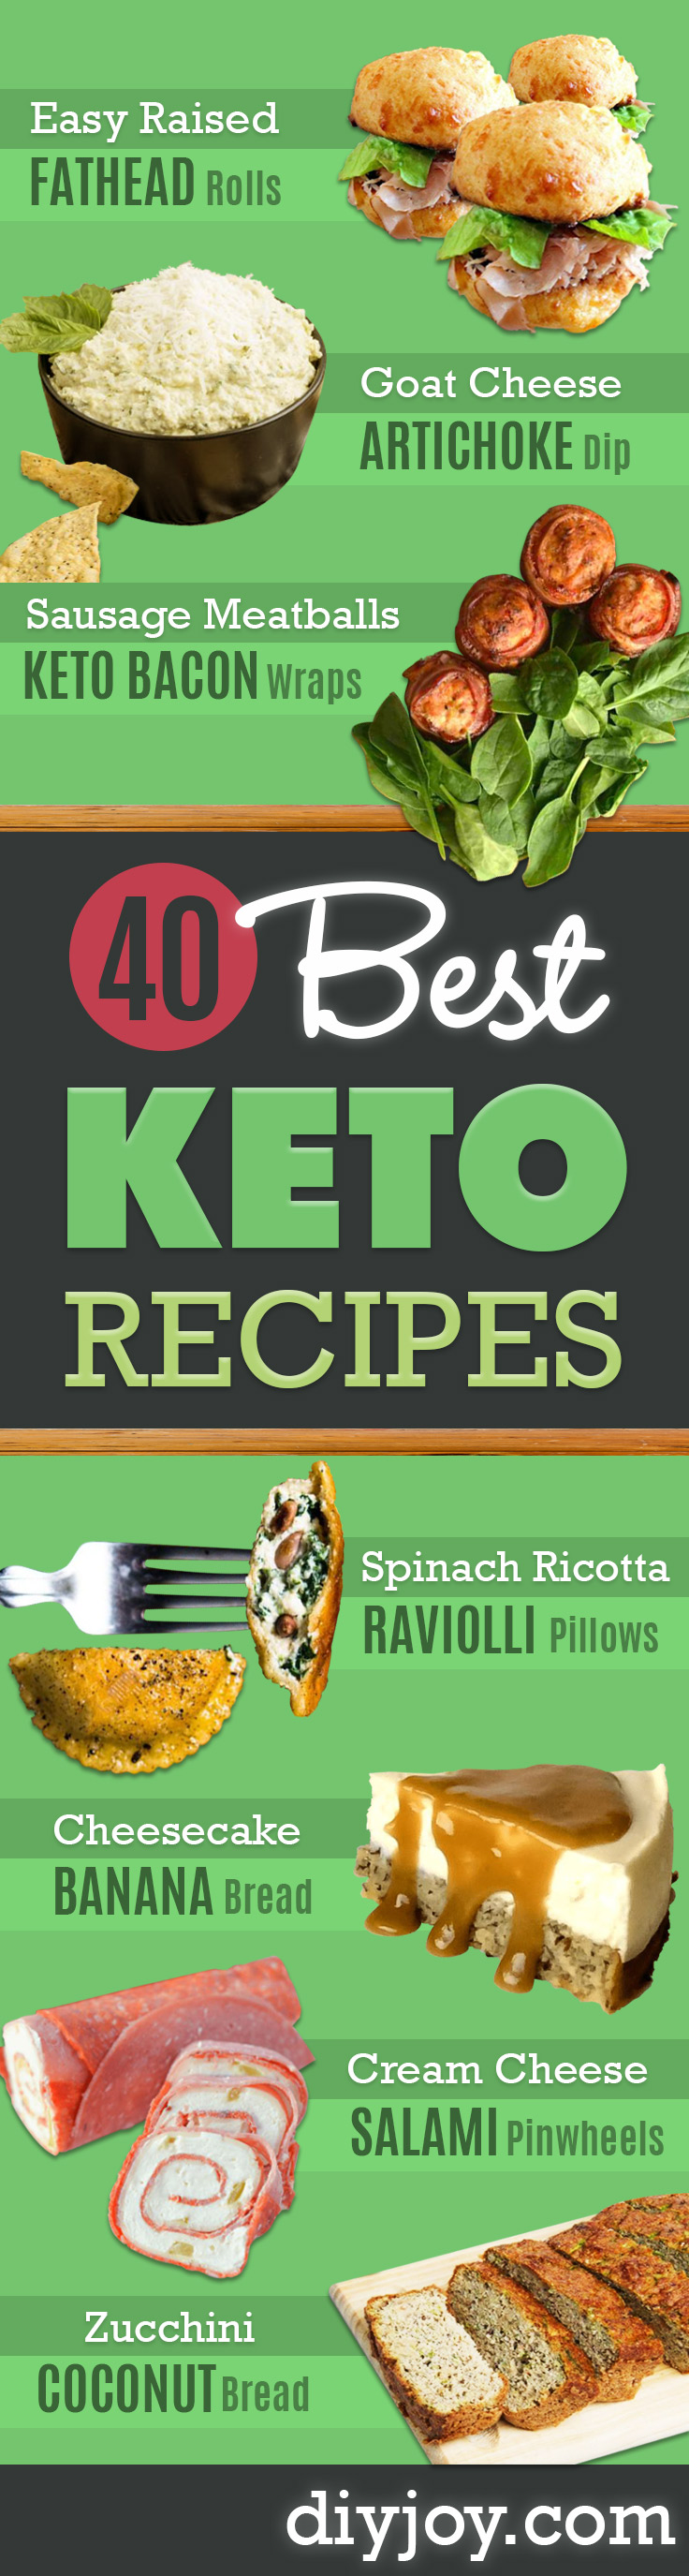 keto recipes easy - quick Ketogenic Recipe Ideas for Breakfast, Lunch, Dinner, Snack and Dessert - Quick Crockpot Meals, Fat Bombs, Gluten Free and Low Carb Foods To Make For The Keto Diet - Shakes, Protein and Cheese Dishes With No or Low Carbohydrates #keto #ketorecipes